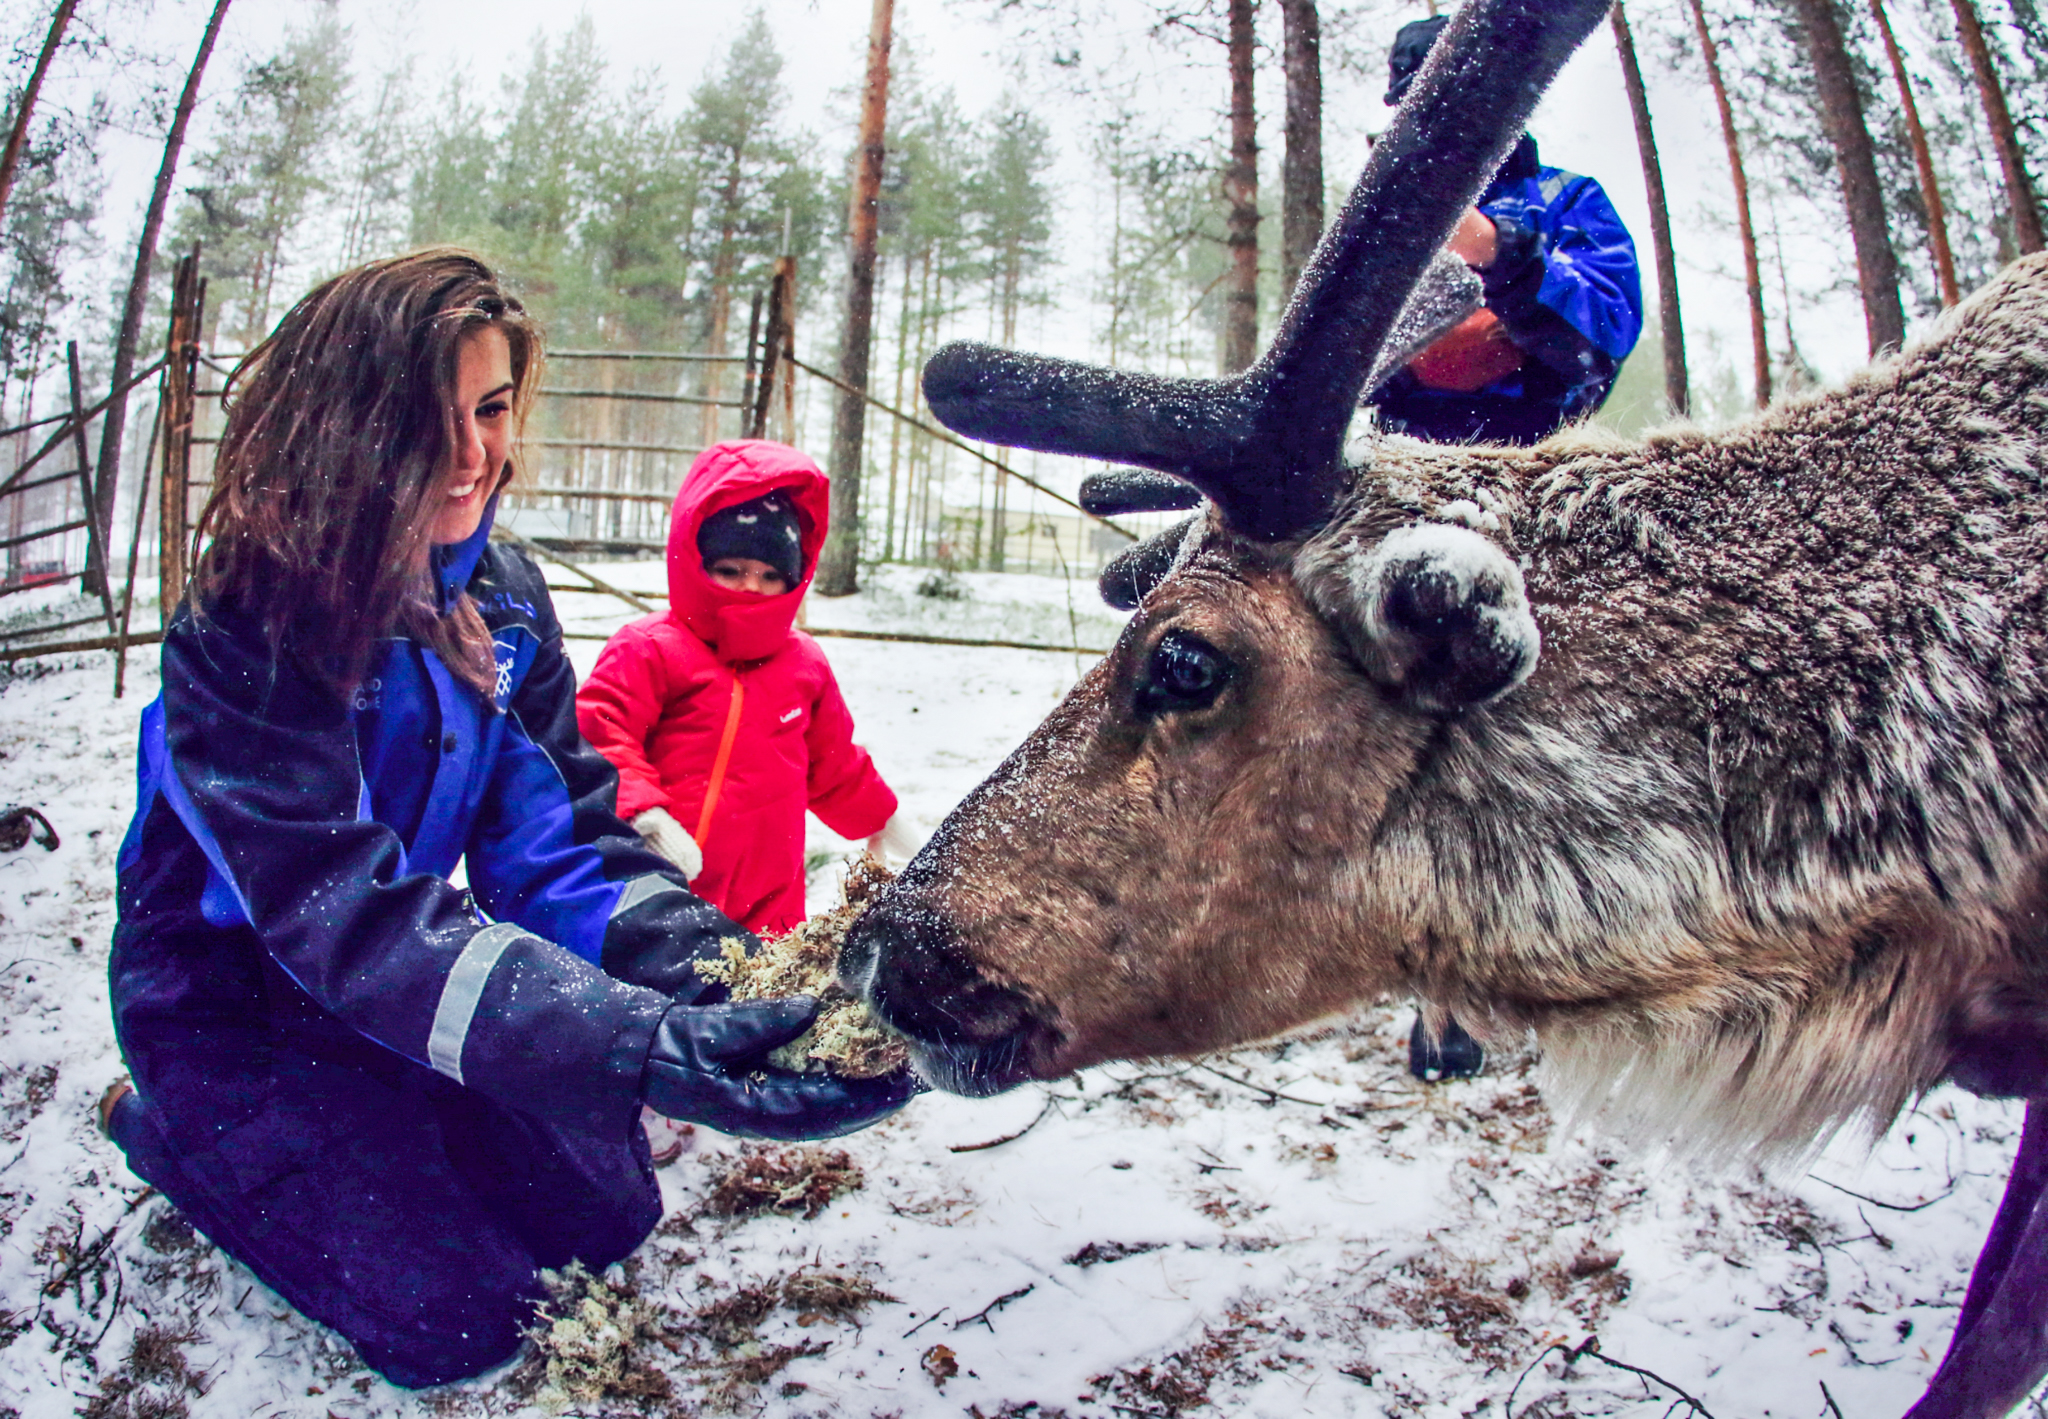 woman and child feeding a reindeer at a farm